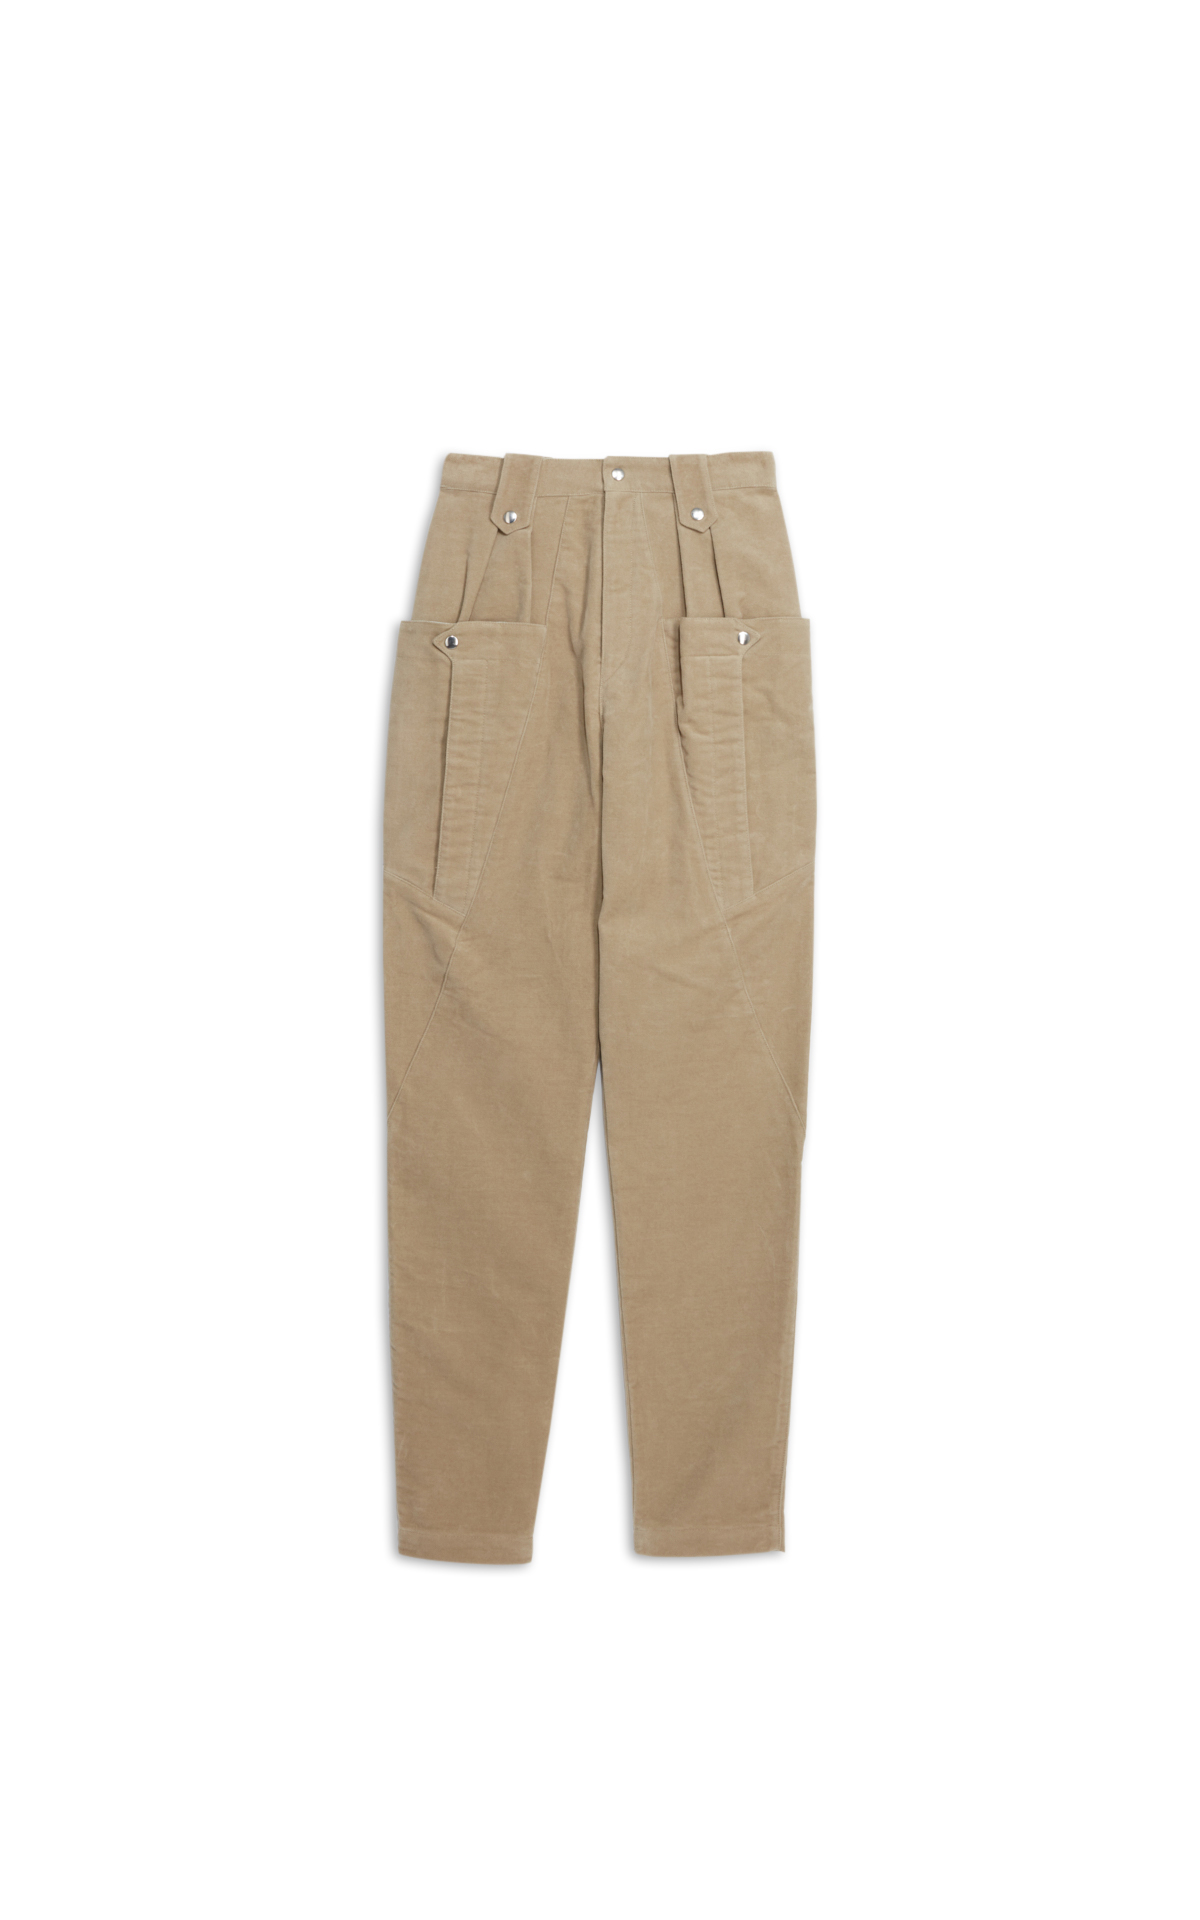 Isabel Marant beige suede trousers with pockets la vallée village